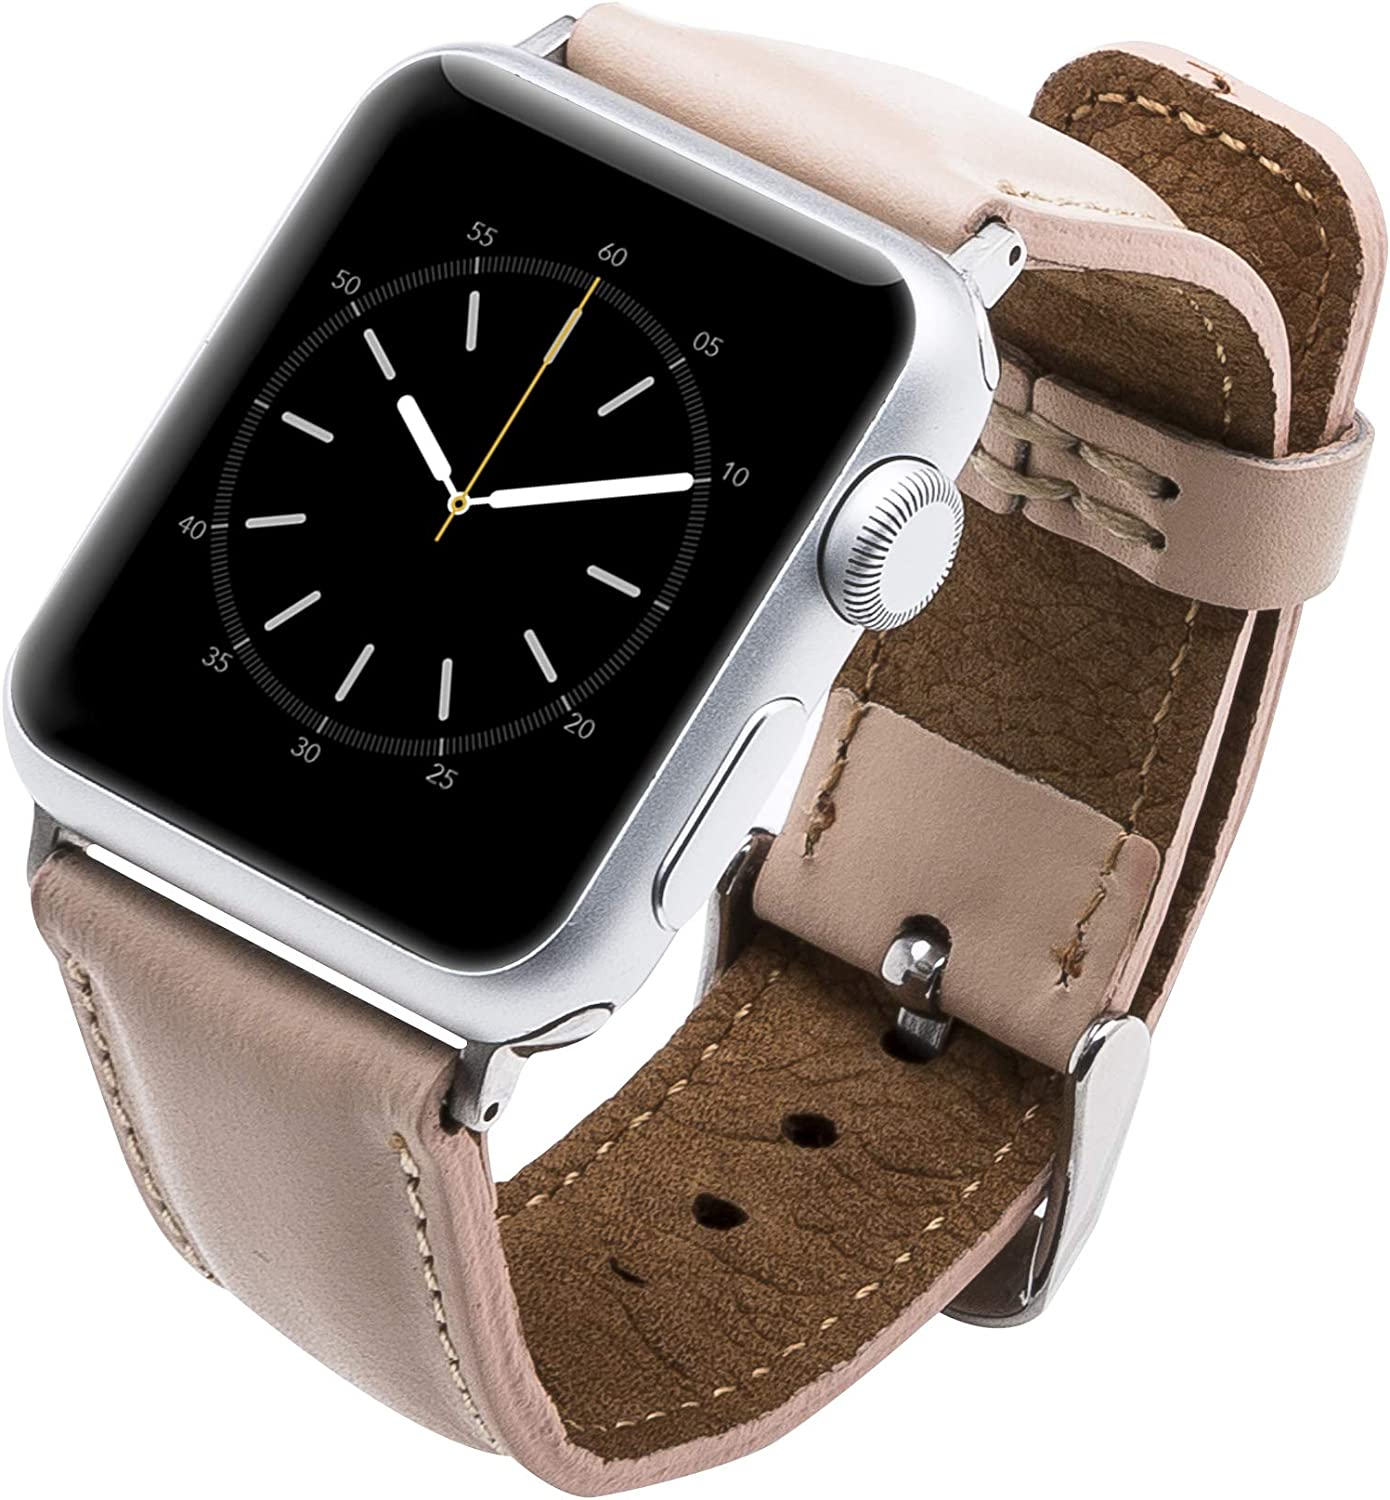 Venito Tuscany Leather Watch Band Compatible with Apple Watch 42mm 44mm - Watch Strap Designed for iwatch Series 1 2 3 4 5 6 (Nude Pink w/Silver Color Connector Clasp)